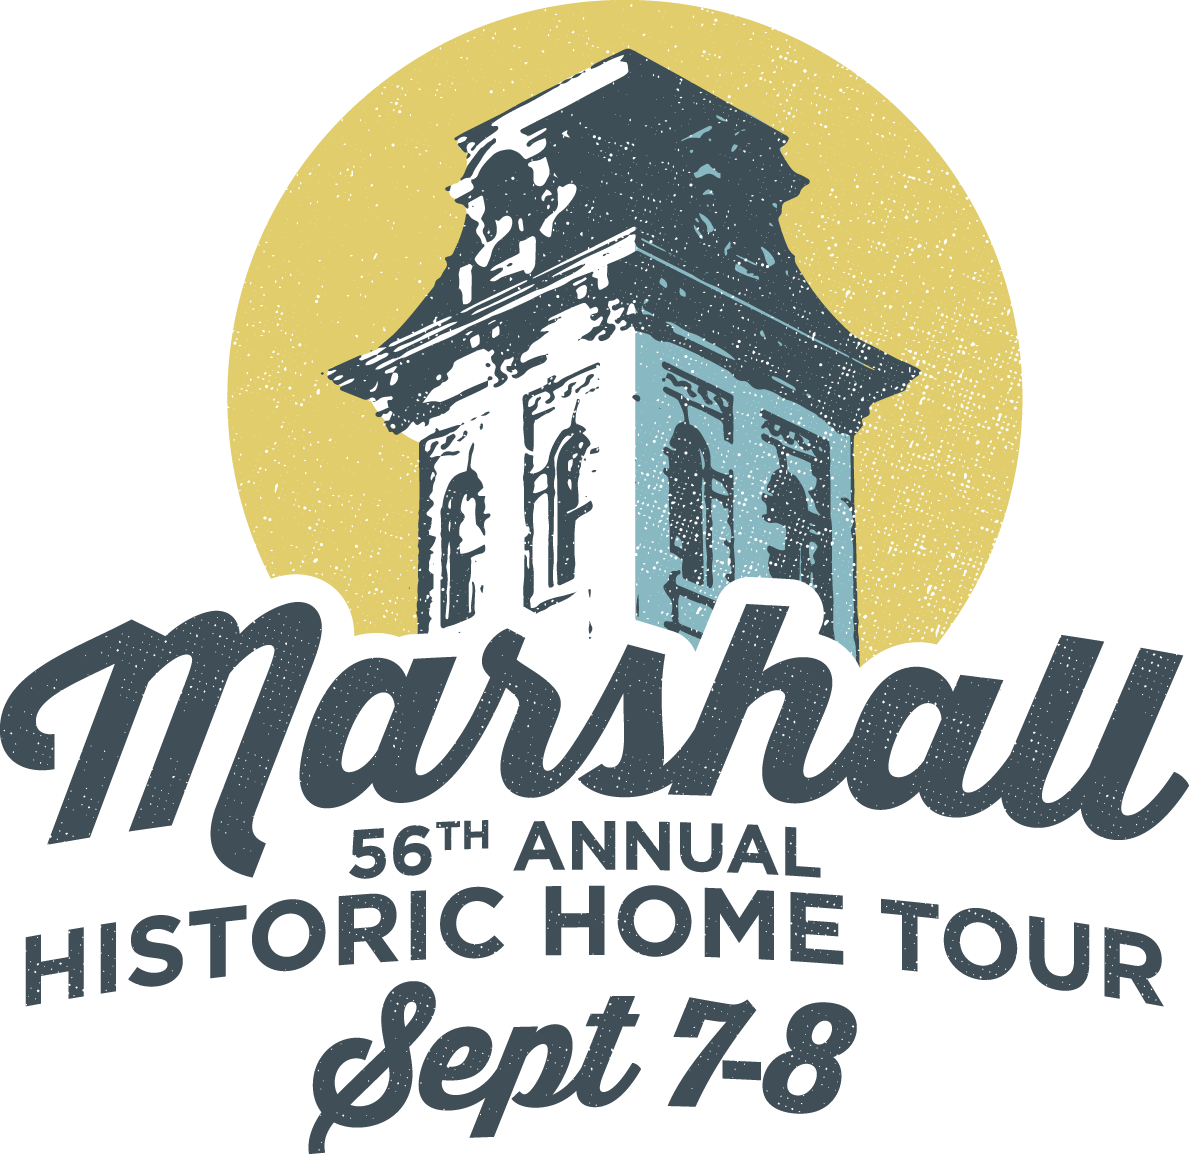 56th Annual Historic Marshall Home Tour